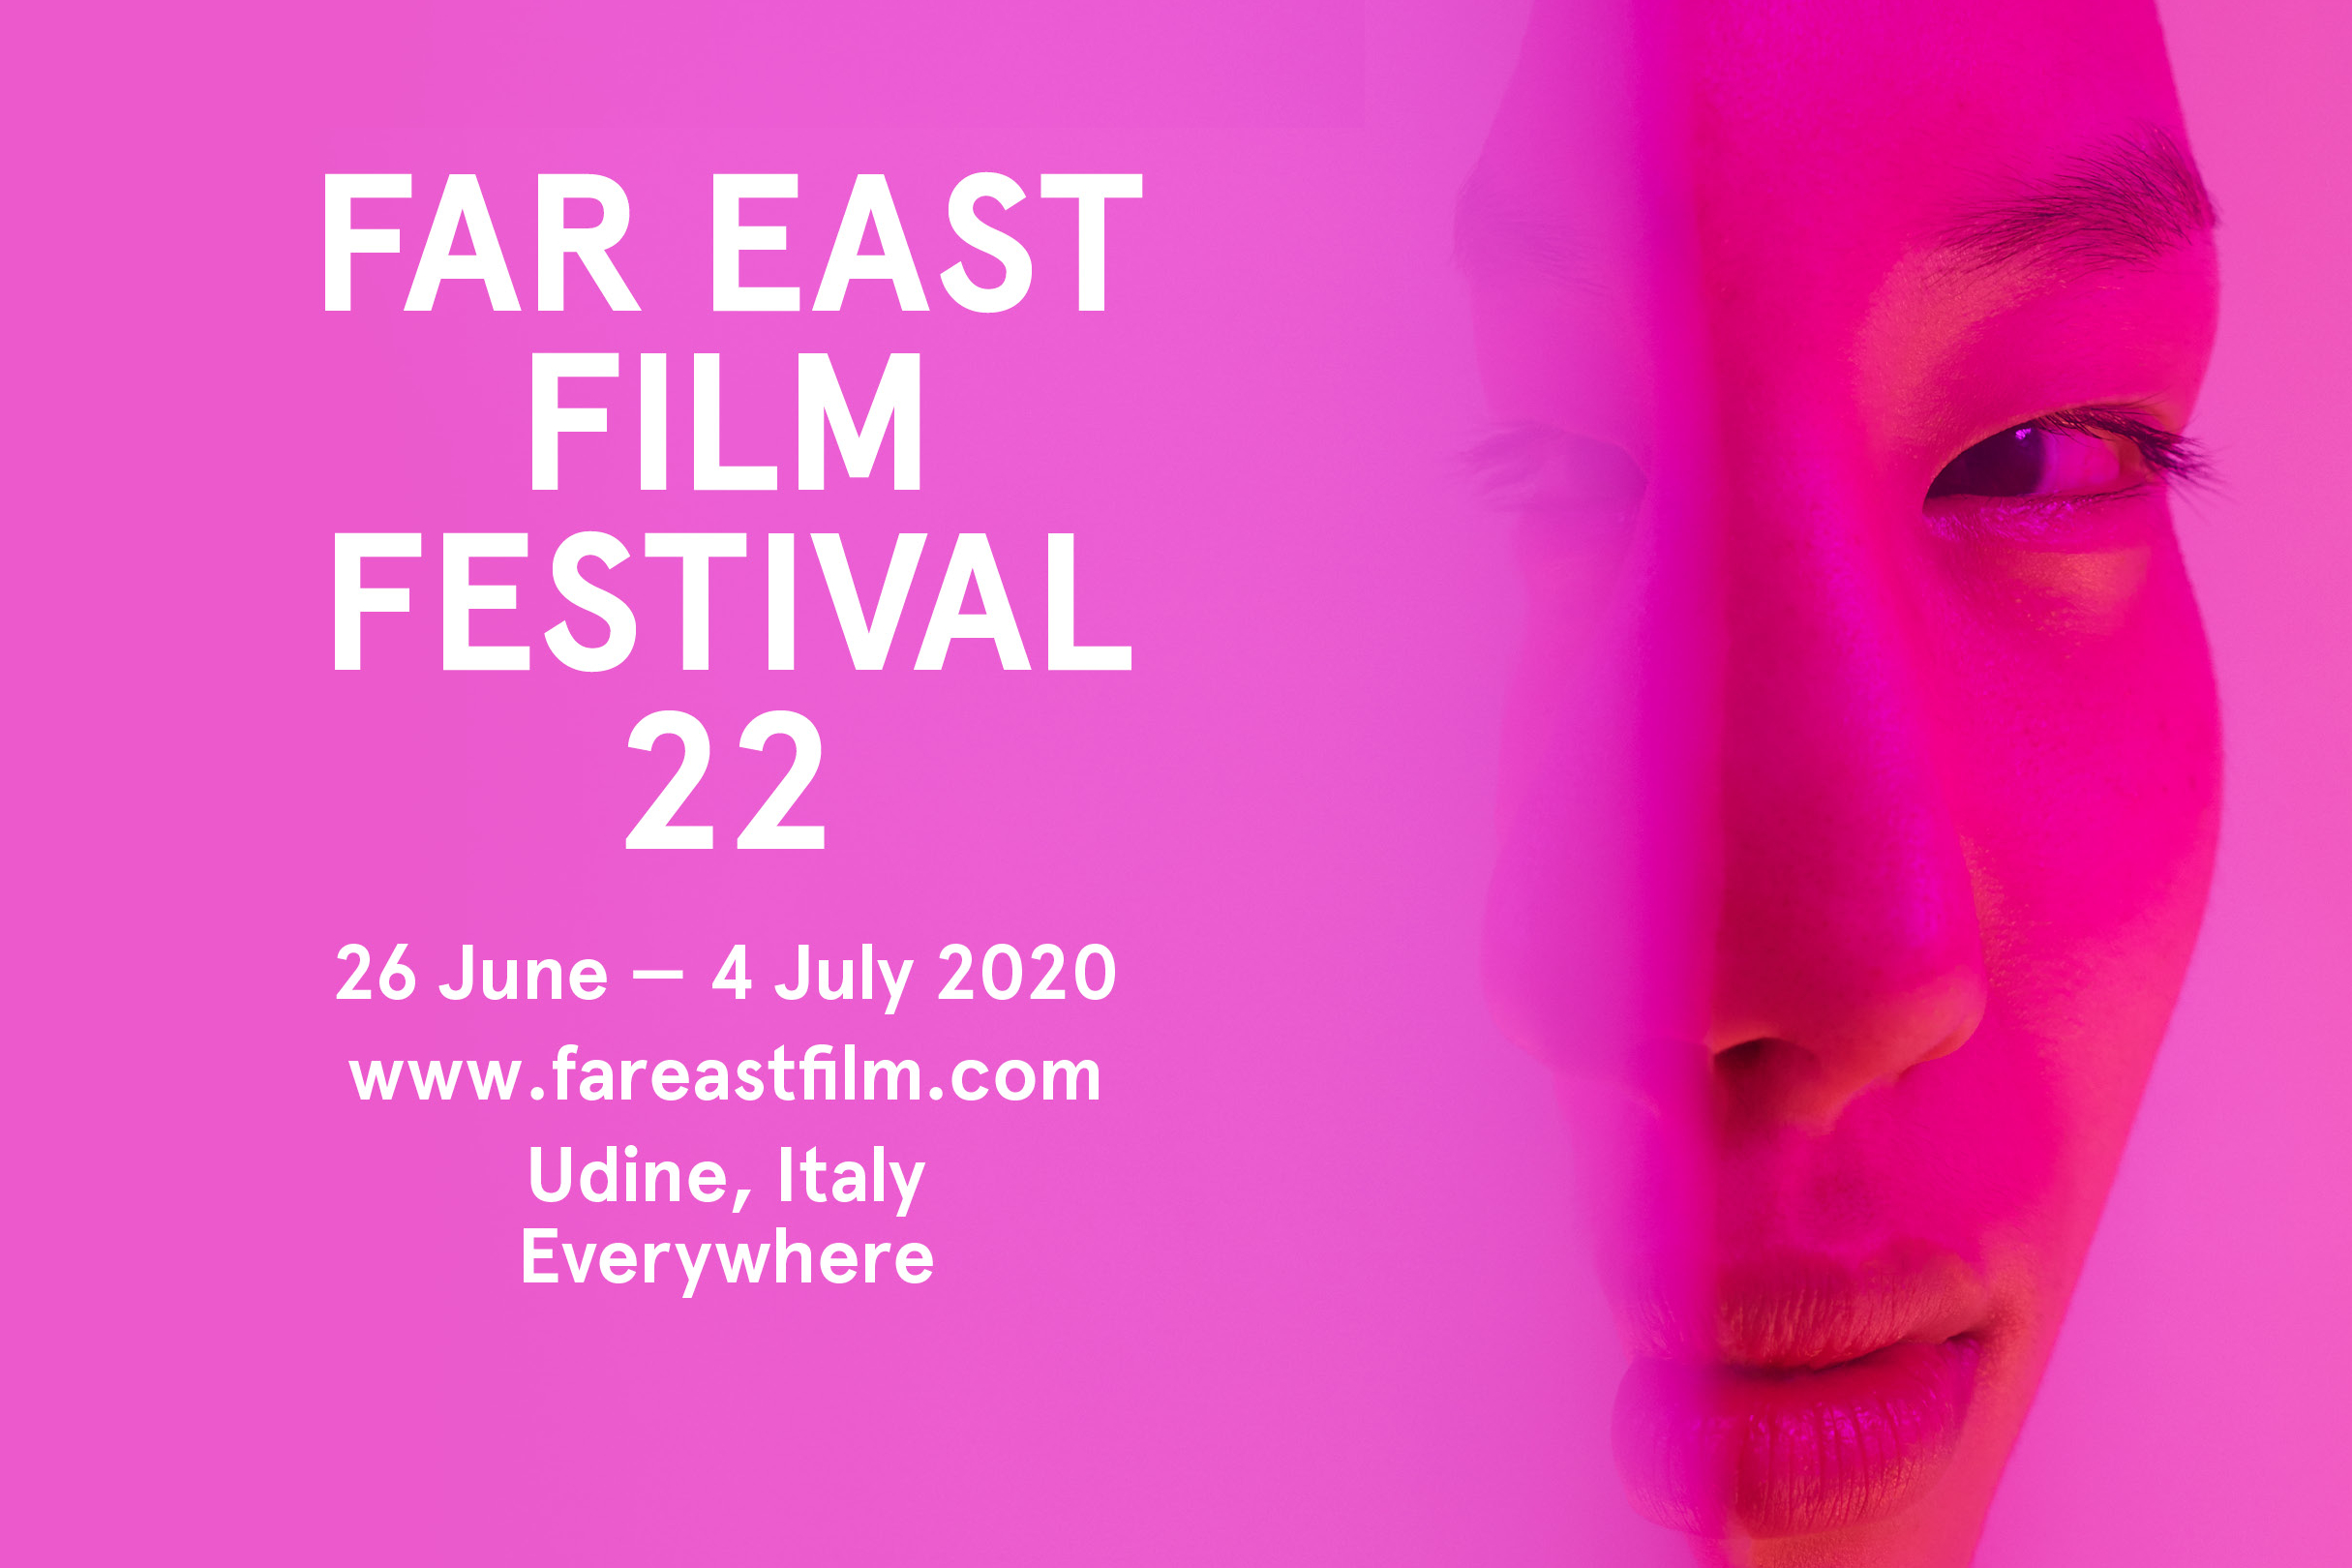 FEFF 22 Far East Film Festival